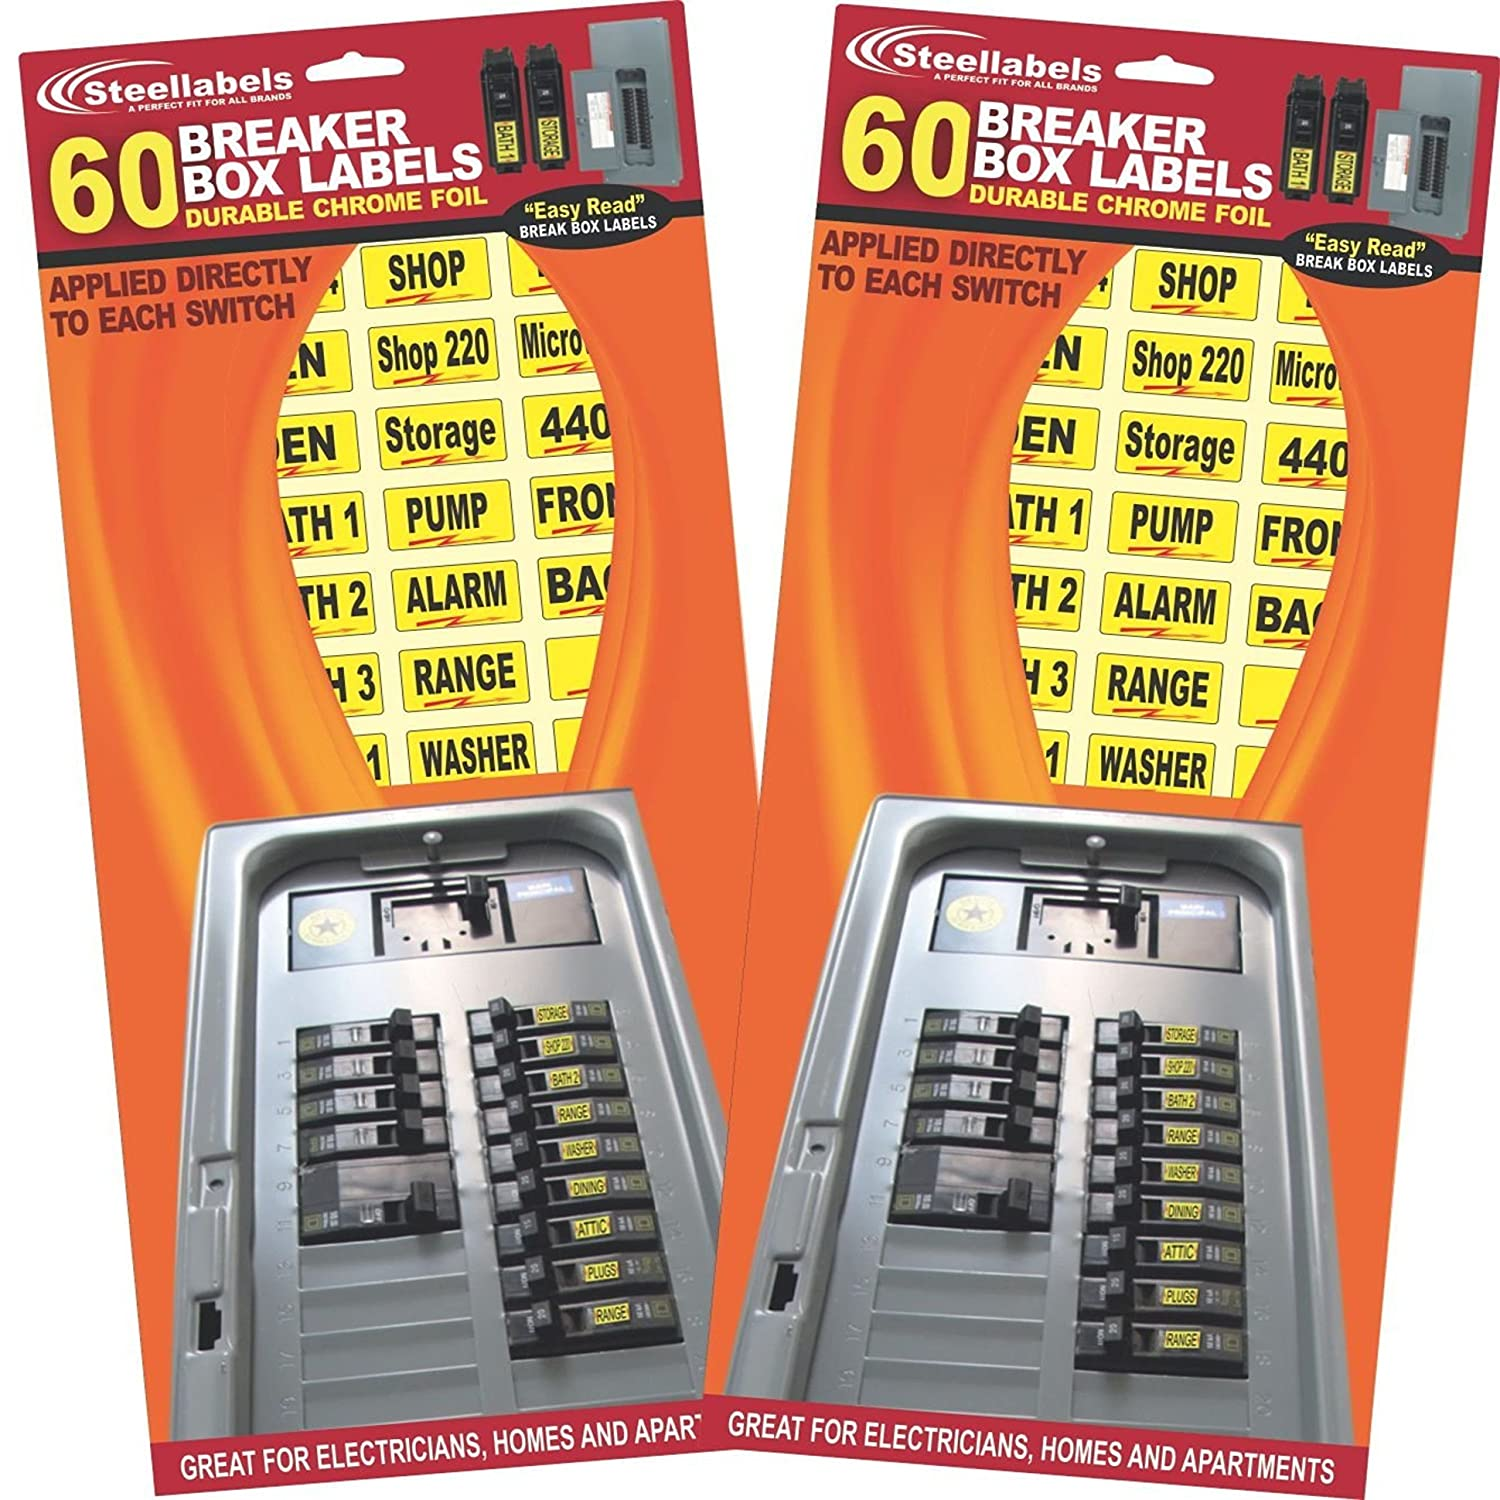 2 for 7 circuit breaker decals tough vinyl labels for breaker tough vinyl labels for breaker boxes great for home owners apartment complexes and electricians placed directly on each switch best quality at the best robcynllc Images